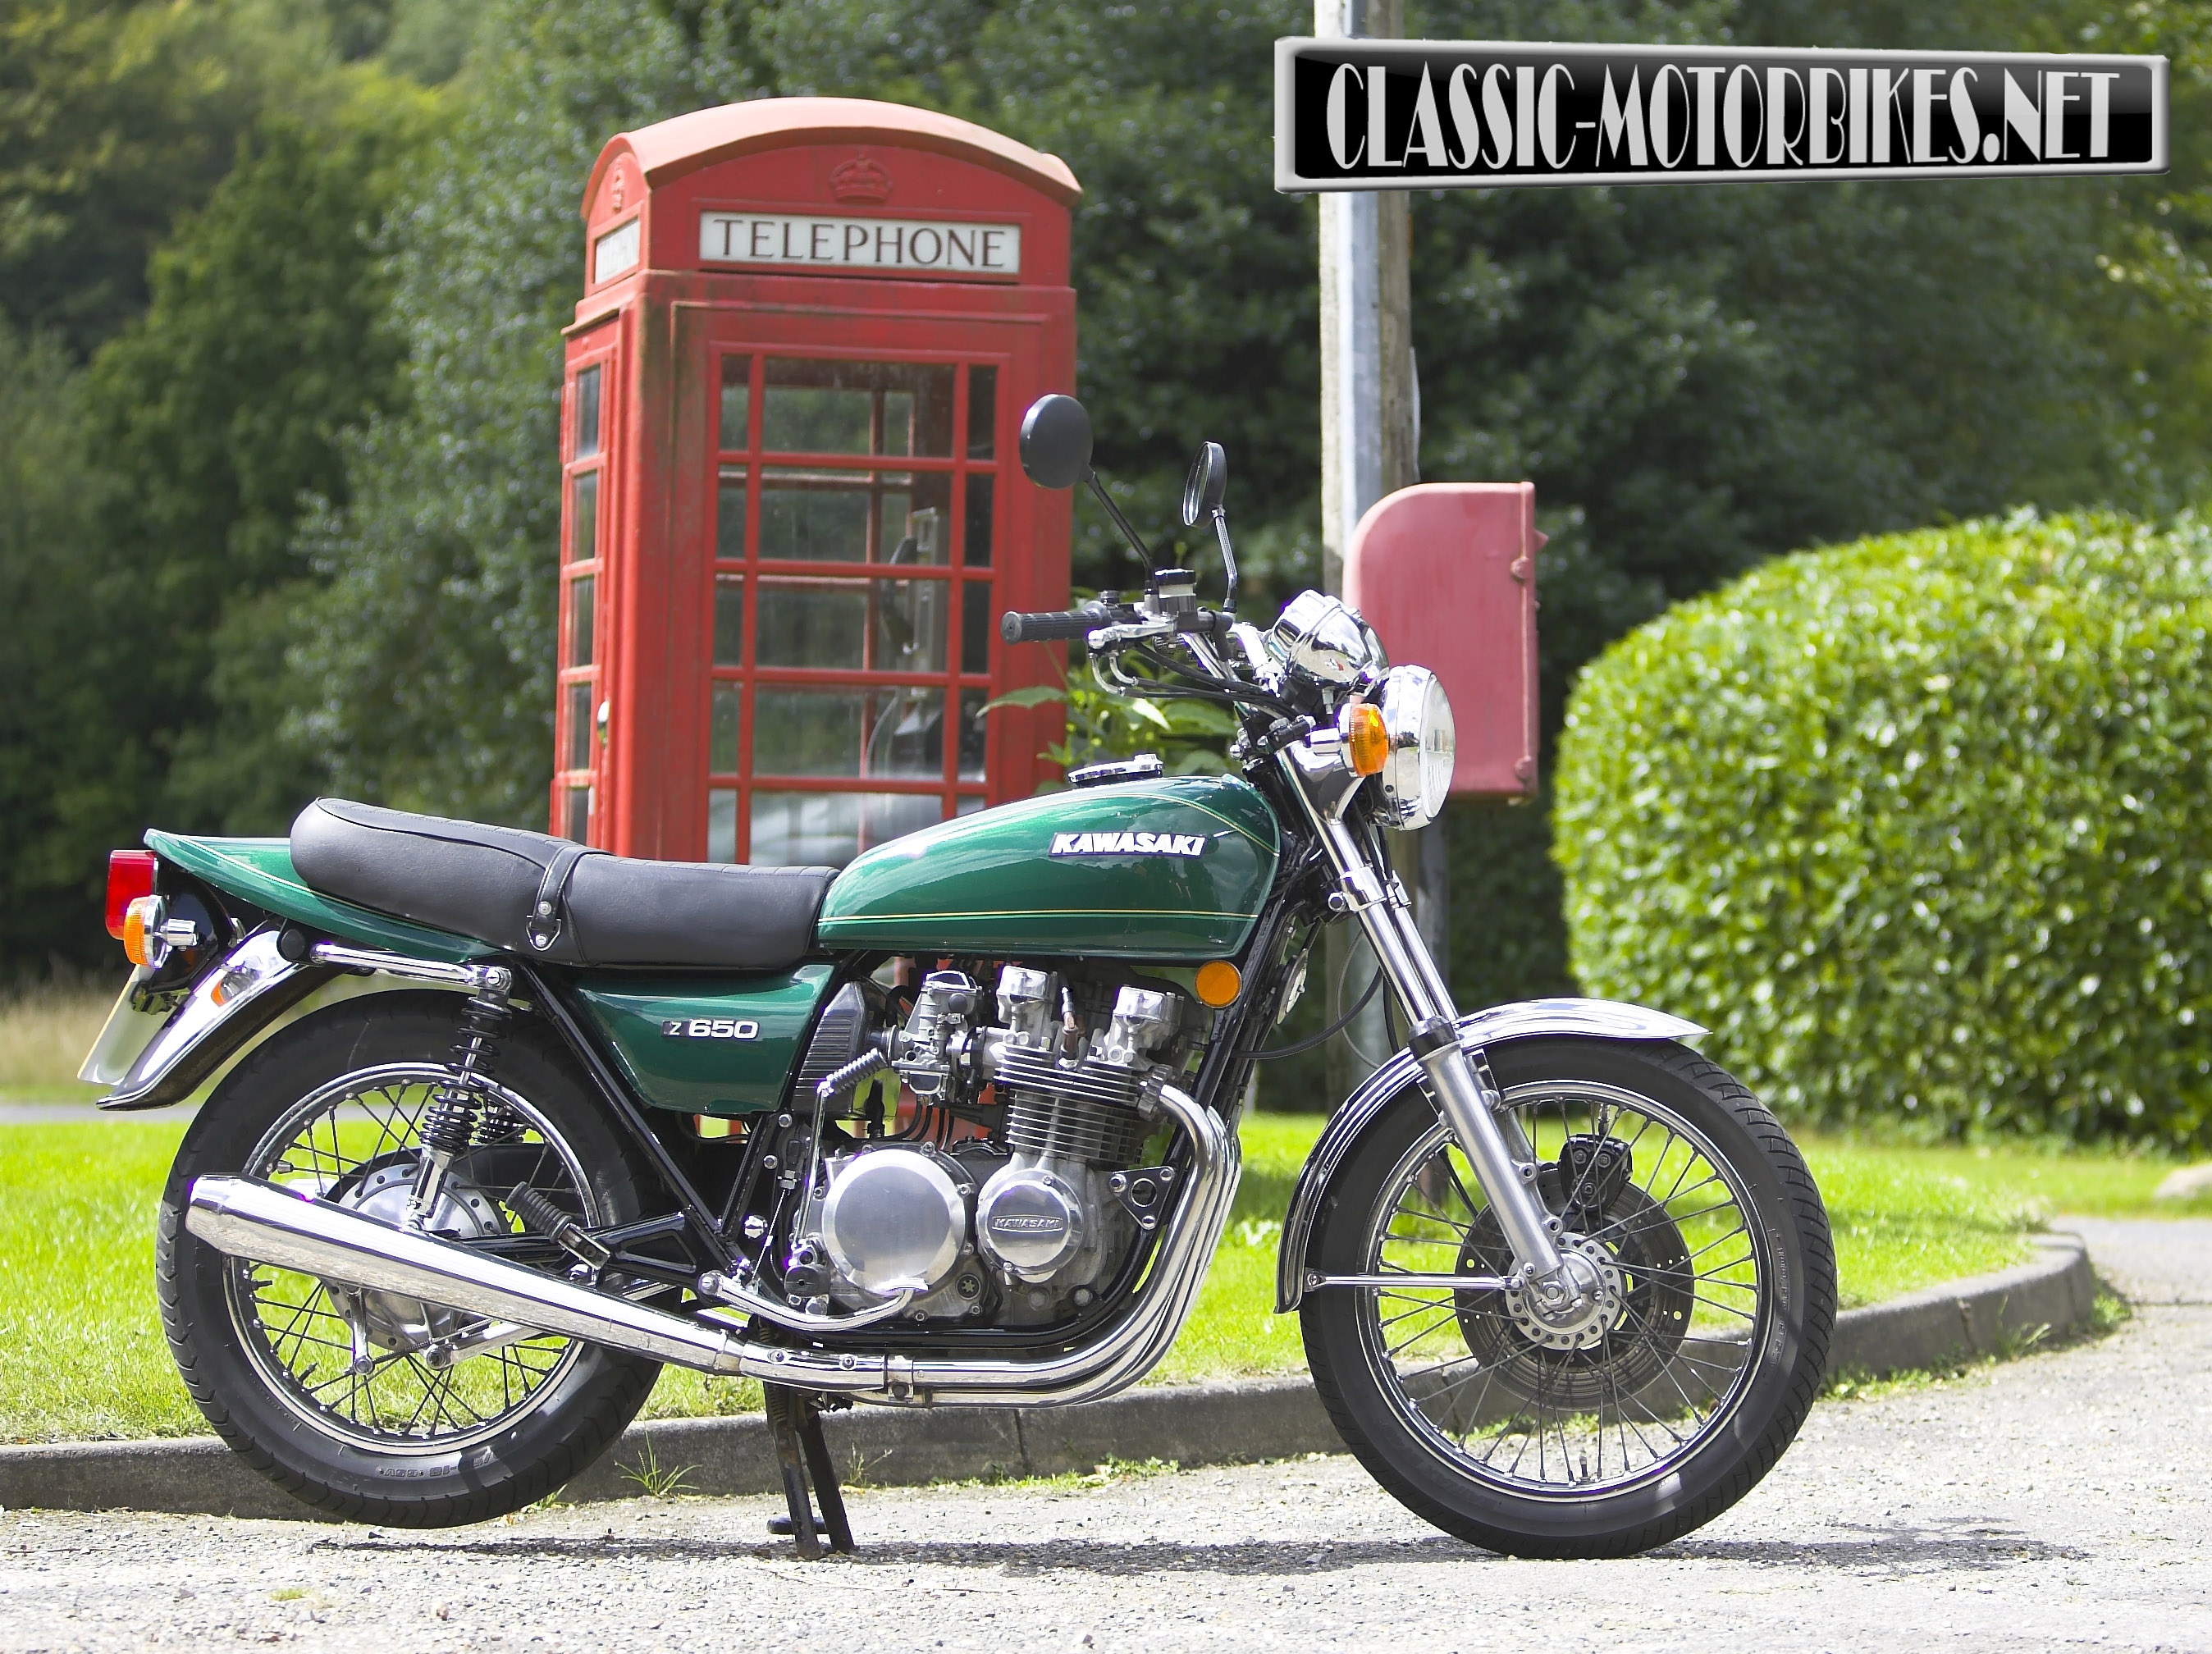 kawasaki z650 road test classic motorbikes. Black Bedroom Furniture Sets. Home Design Ideas